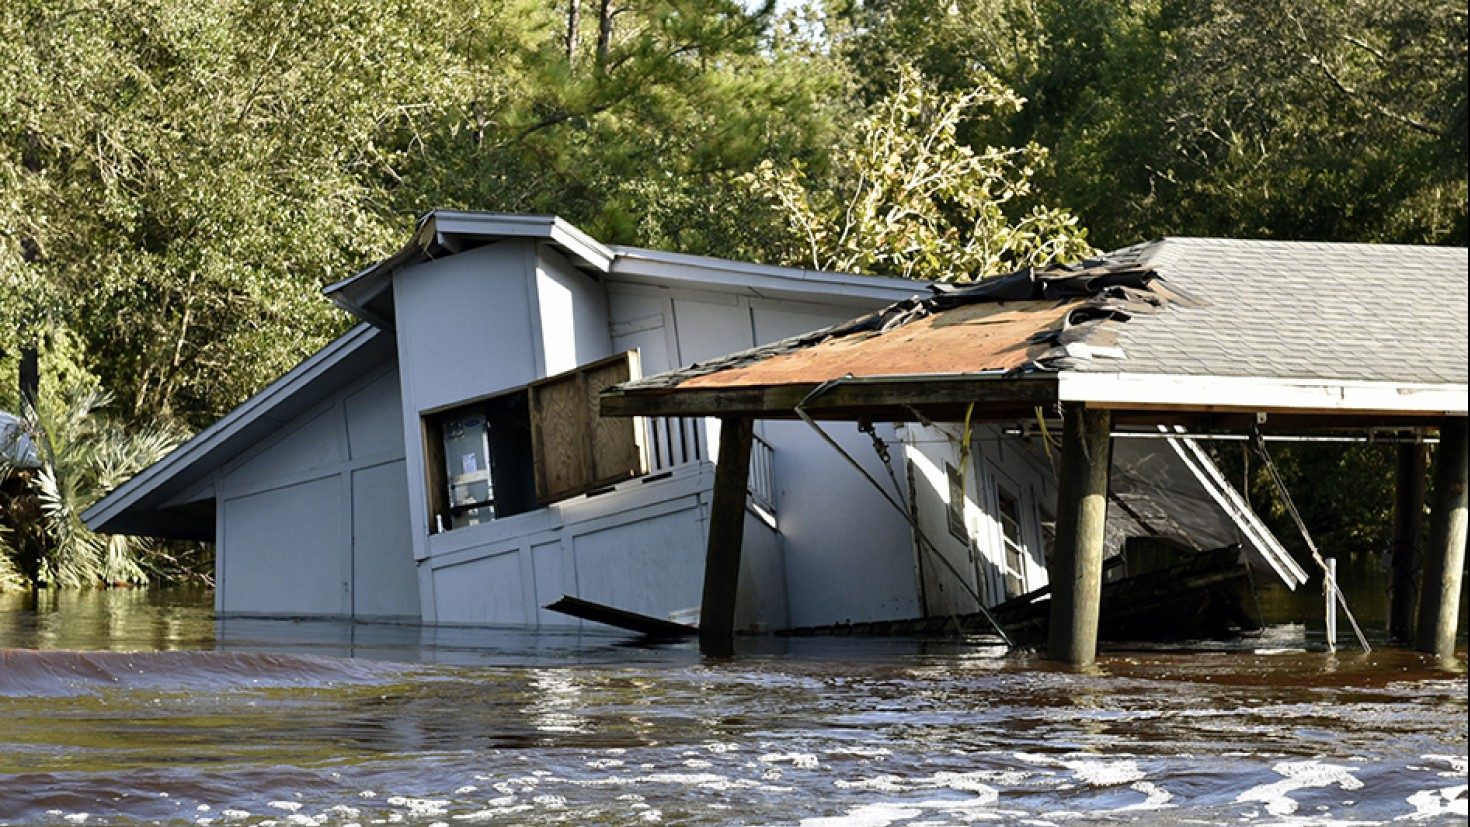 Damage after hurricane irma in Florida, September 2017. photo: Florida fish and wildlife, via flickr.